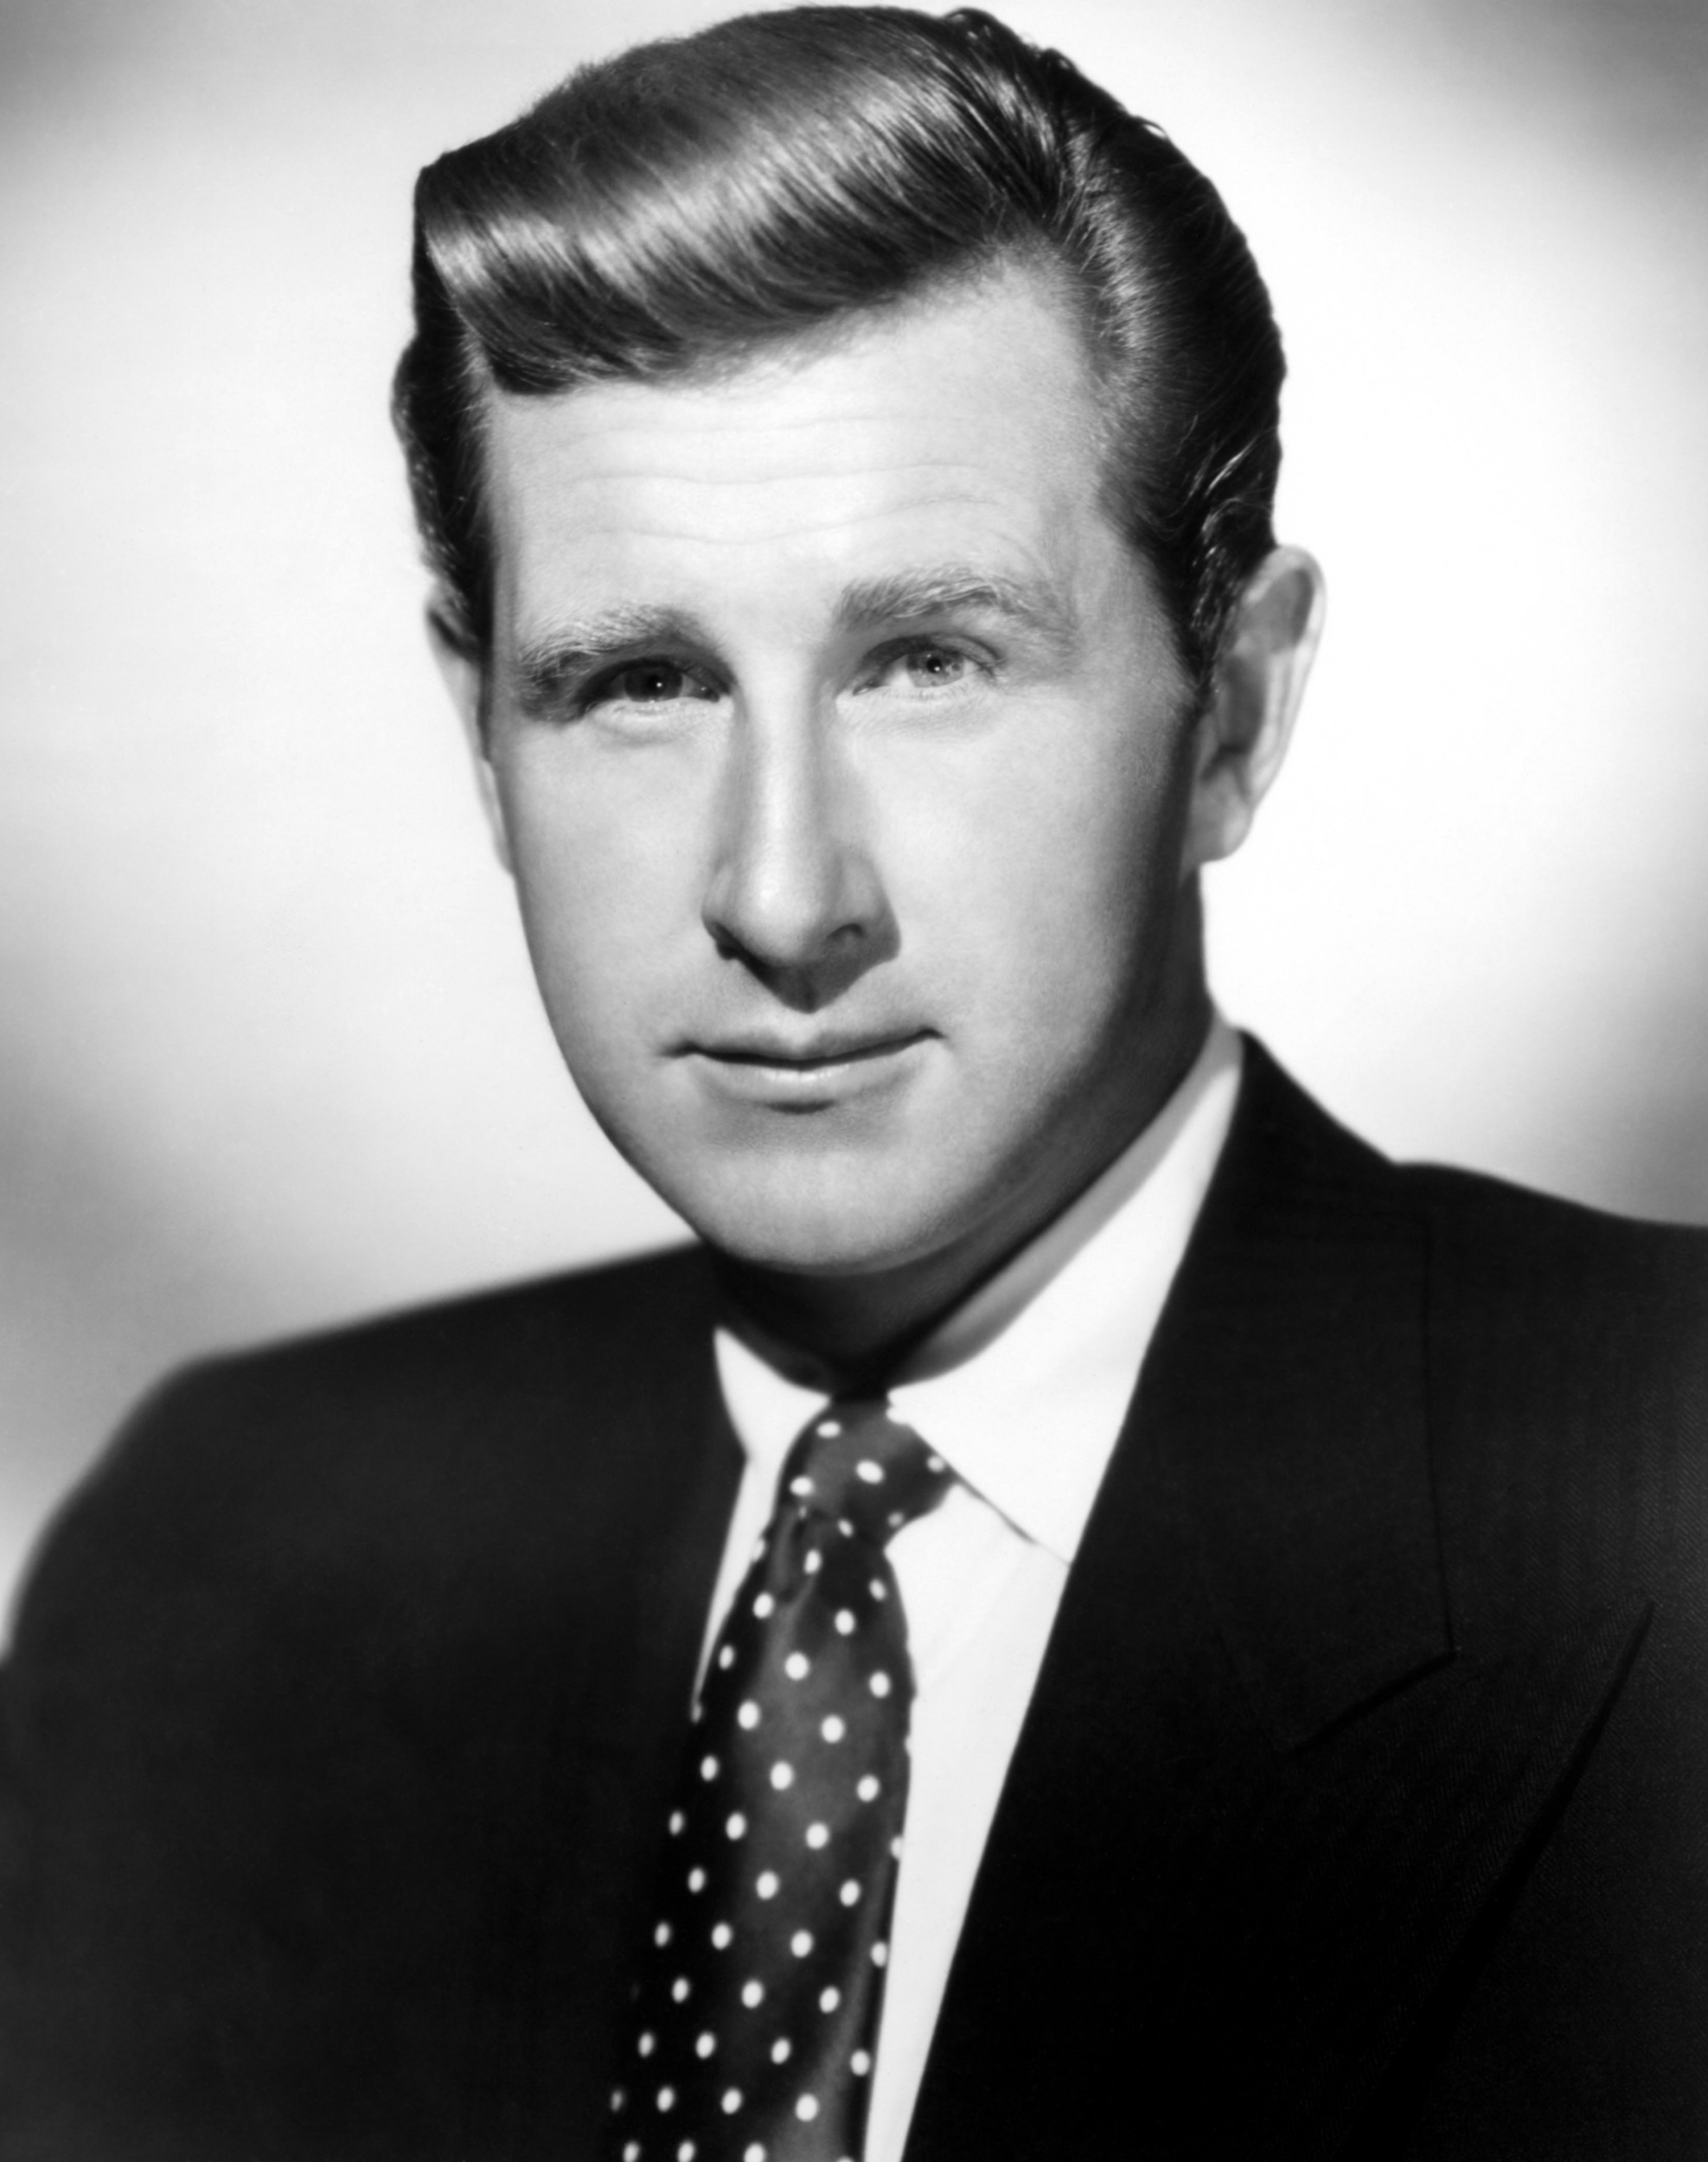 lloyd bridges airplanelloyd bridges jeff bridges, lloyd bridges young, lloyd bridges airplane, lloyd bridges, lloyd bridges movies, lloyd bridges wiki, lloyd bridges airplane quotes, lloyd bridges wife, lloyd bridges wikipedia, lloyd bridges films, lloyd bridges rv, lloyd bridges sea hunt, lloyd bridges seinfeld, lloyd bridges imdb, lloyd bridges net worth, lloyd bridges hot shots, lloyd bridges rv chelsea mi, lloyd bridges sniffing glue, lloyd bridges movies list, lloyd bridges grave